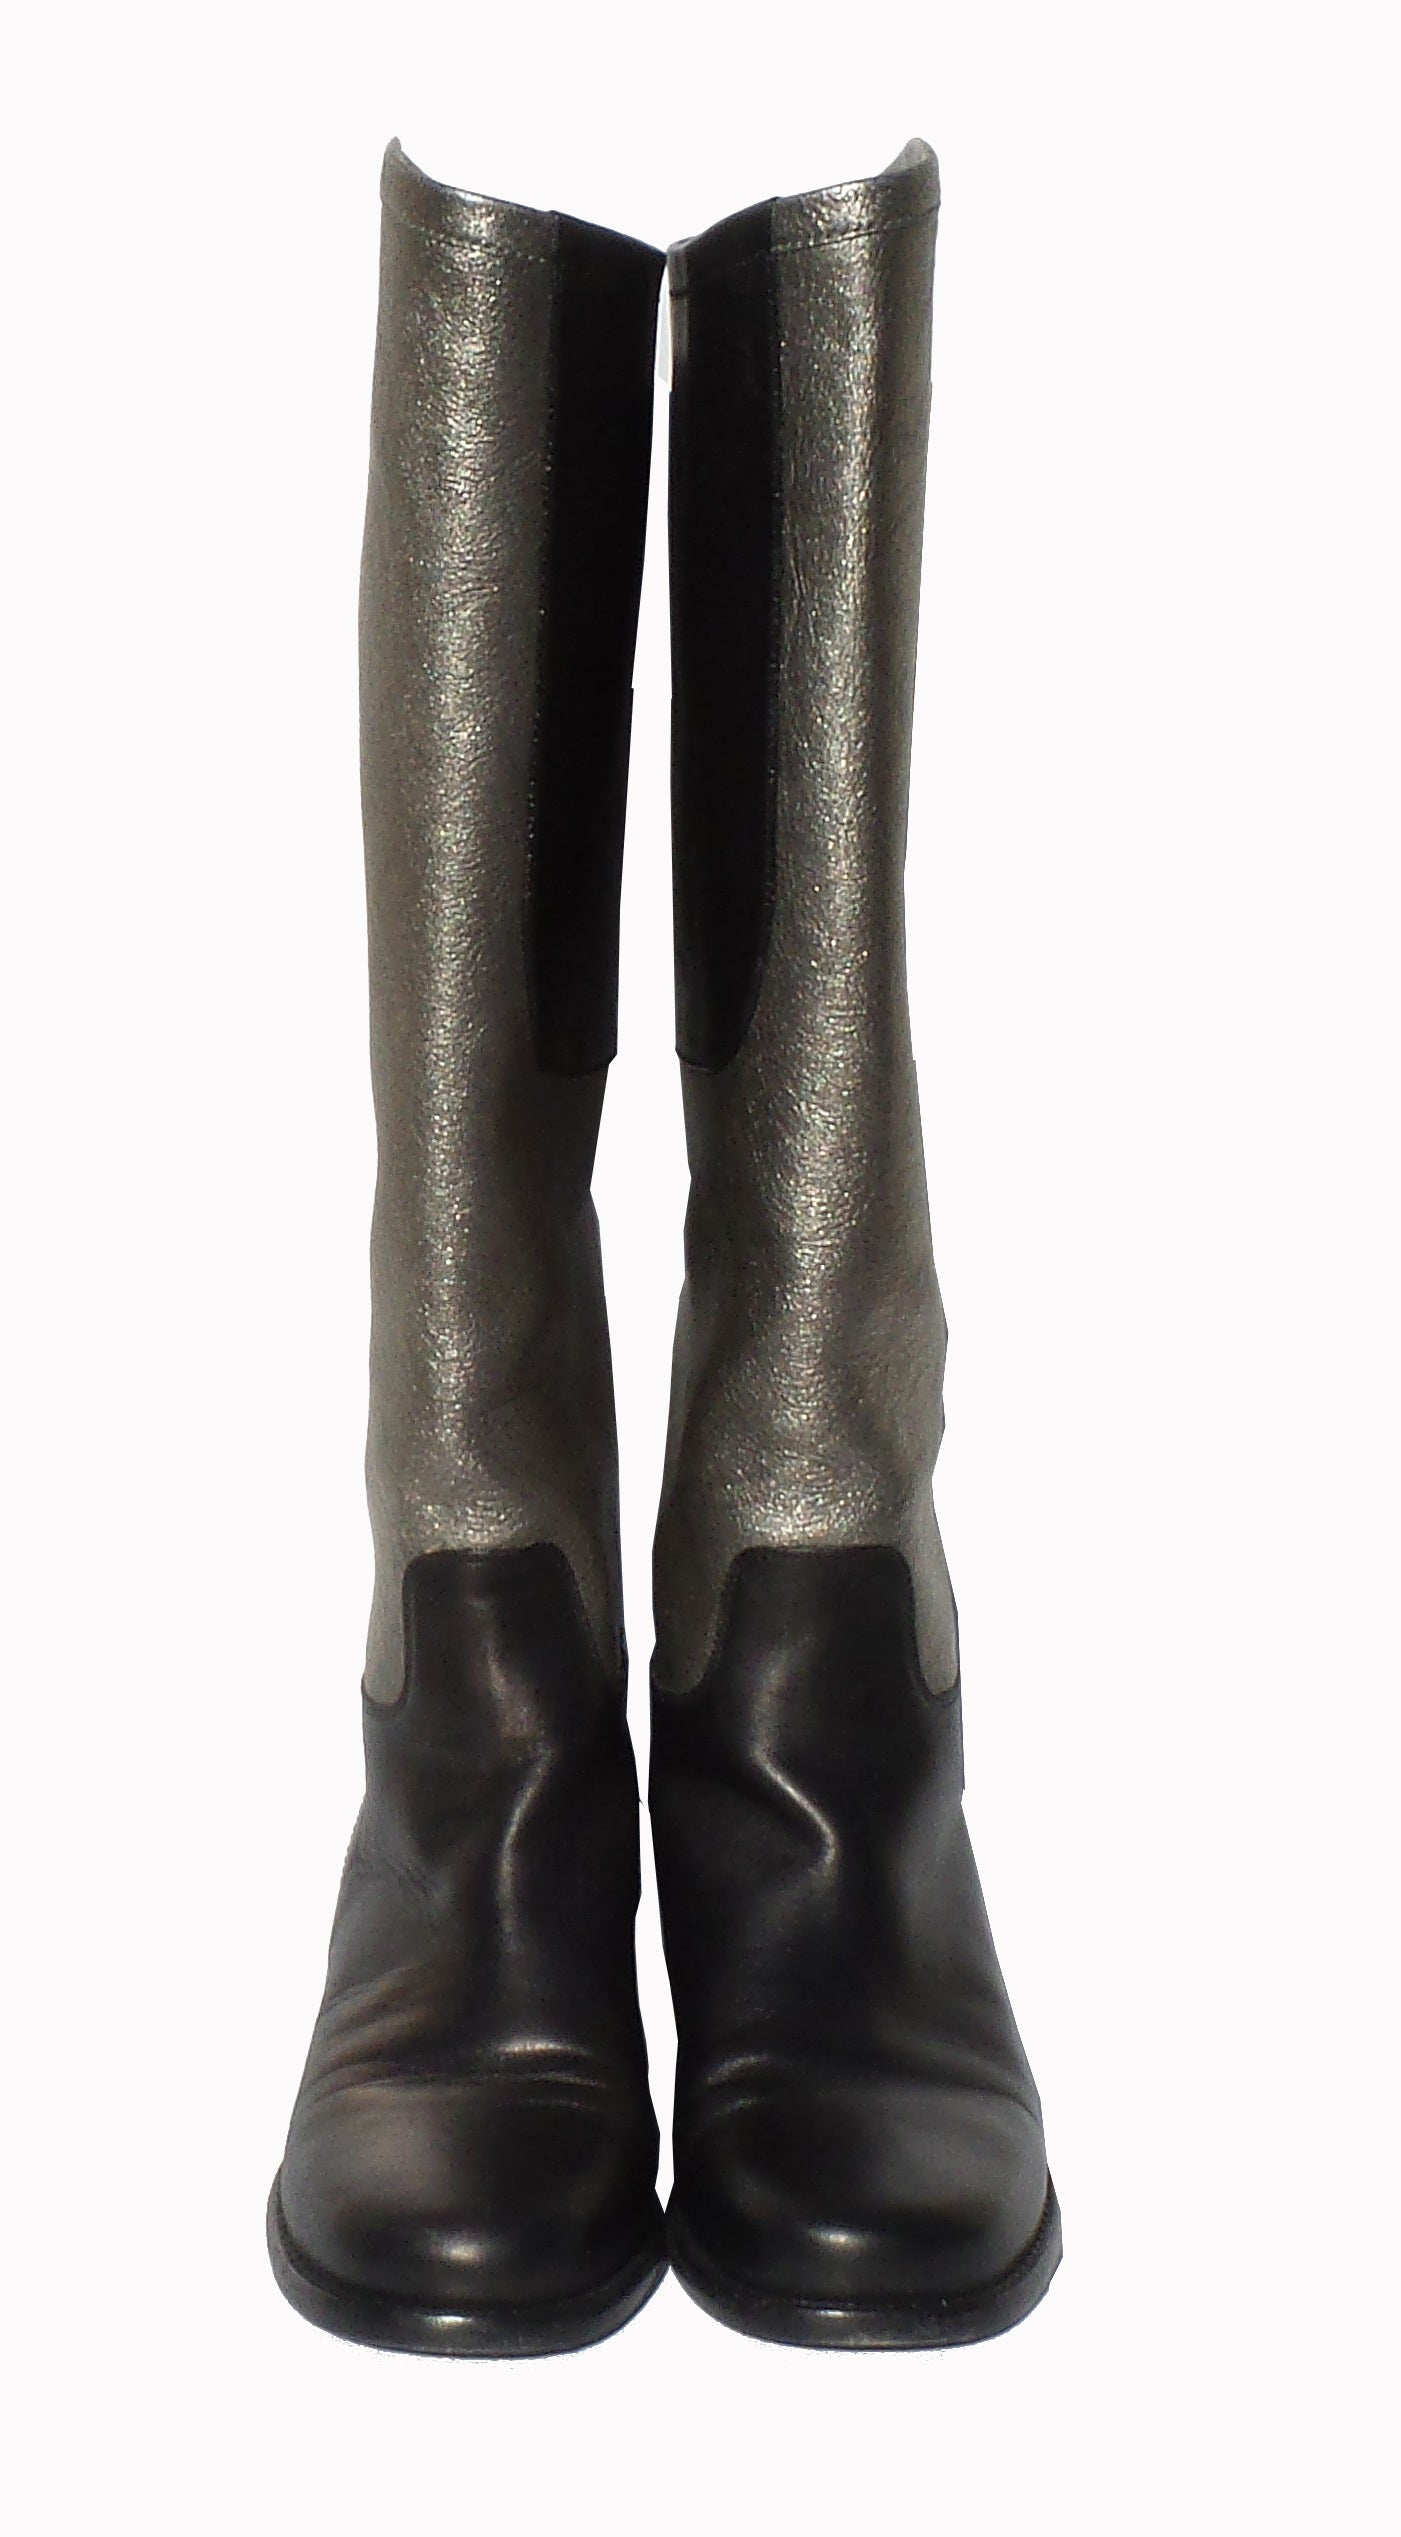 CHANEL Black Silver Leather Stitched CC Boots 38 $1595